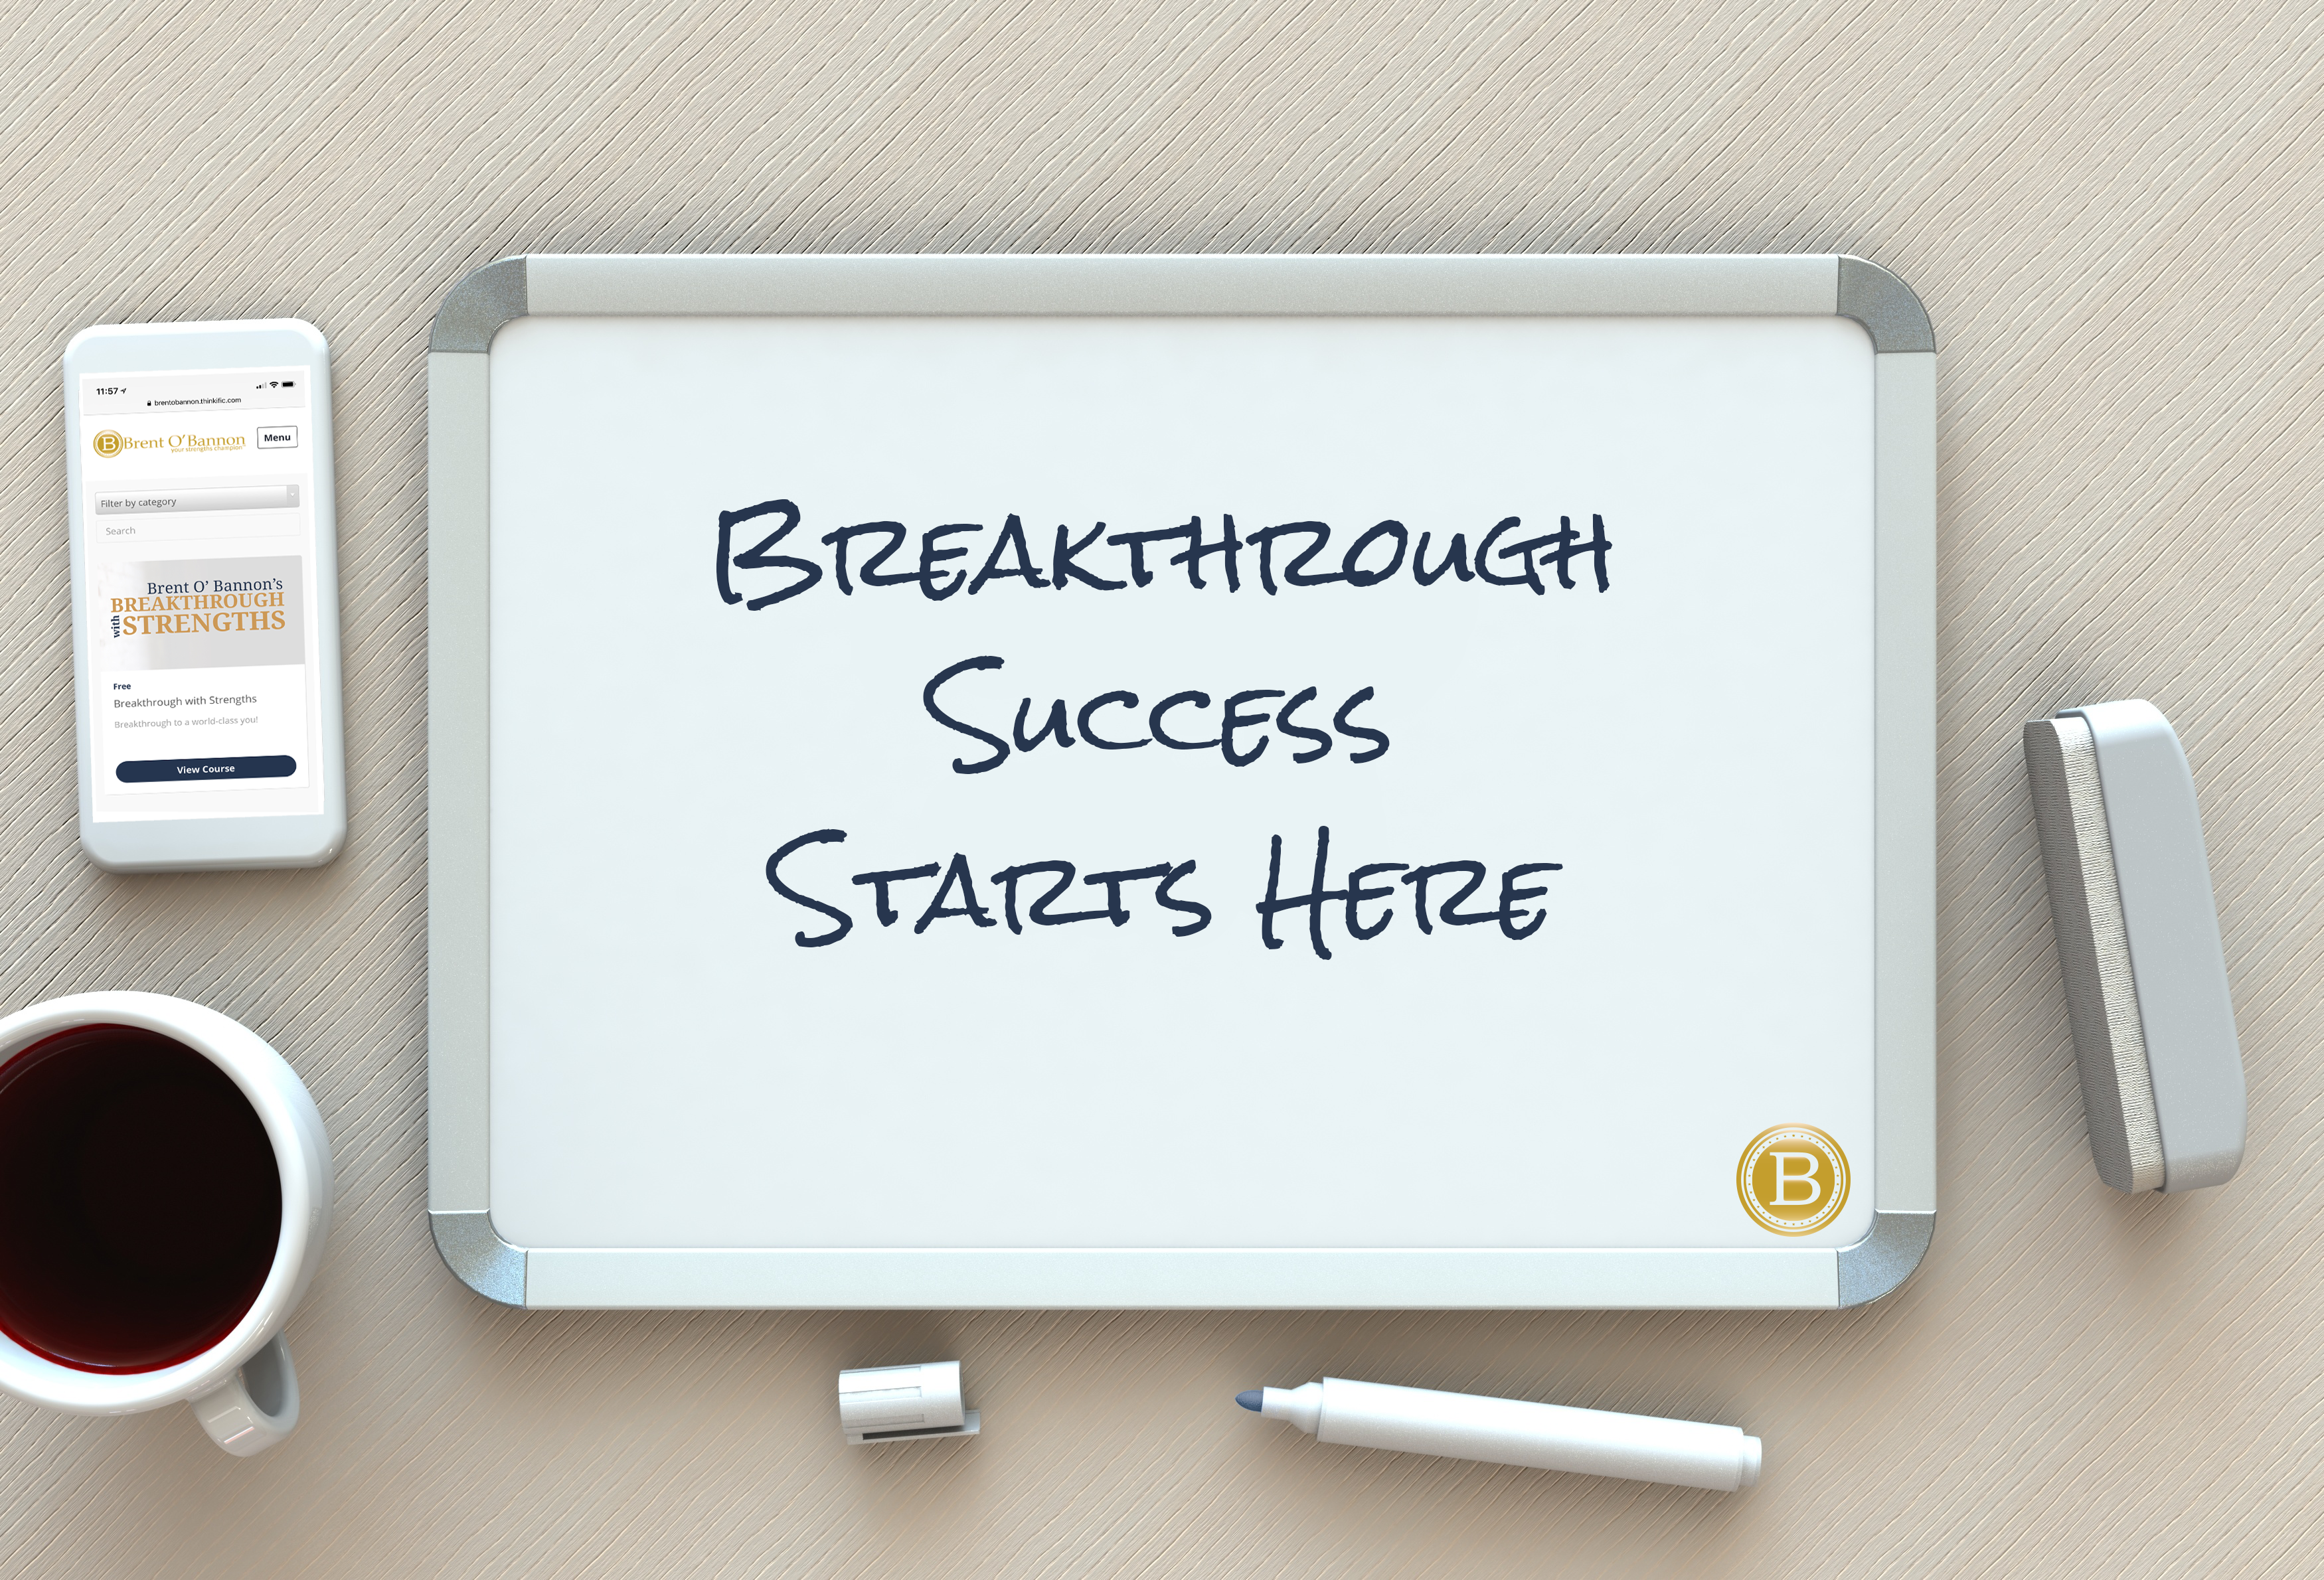 Your Breakthrough Starts Here